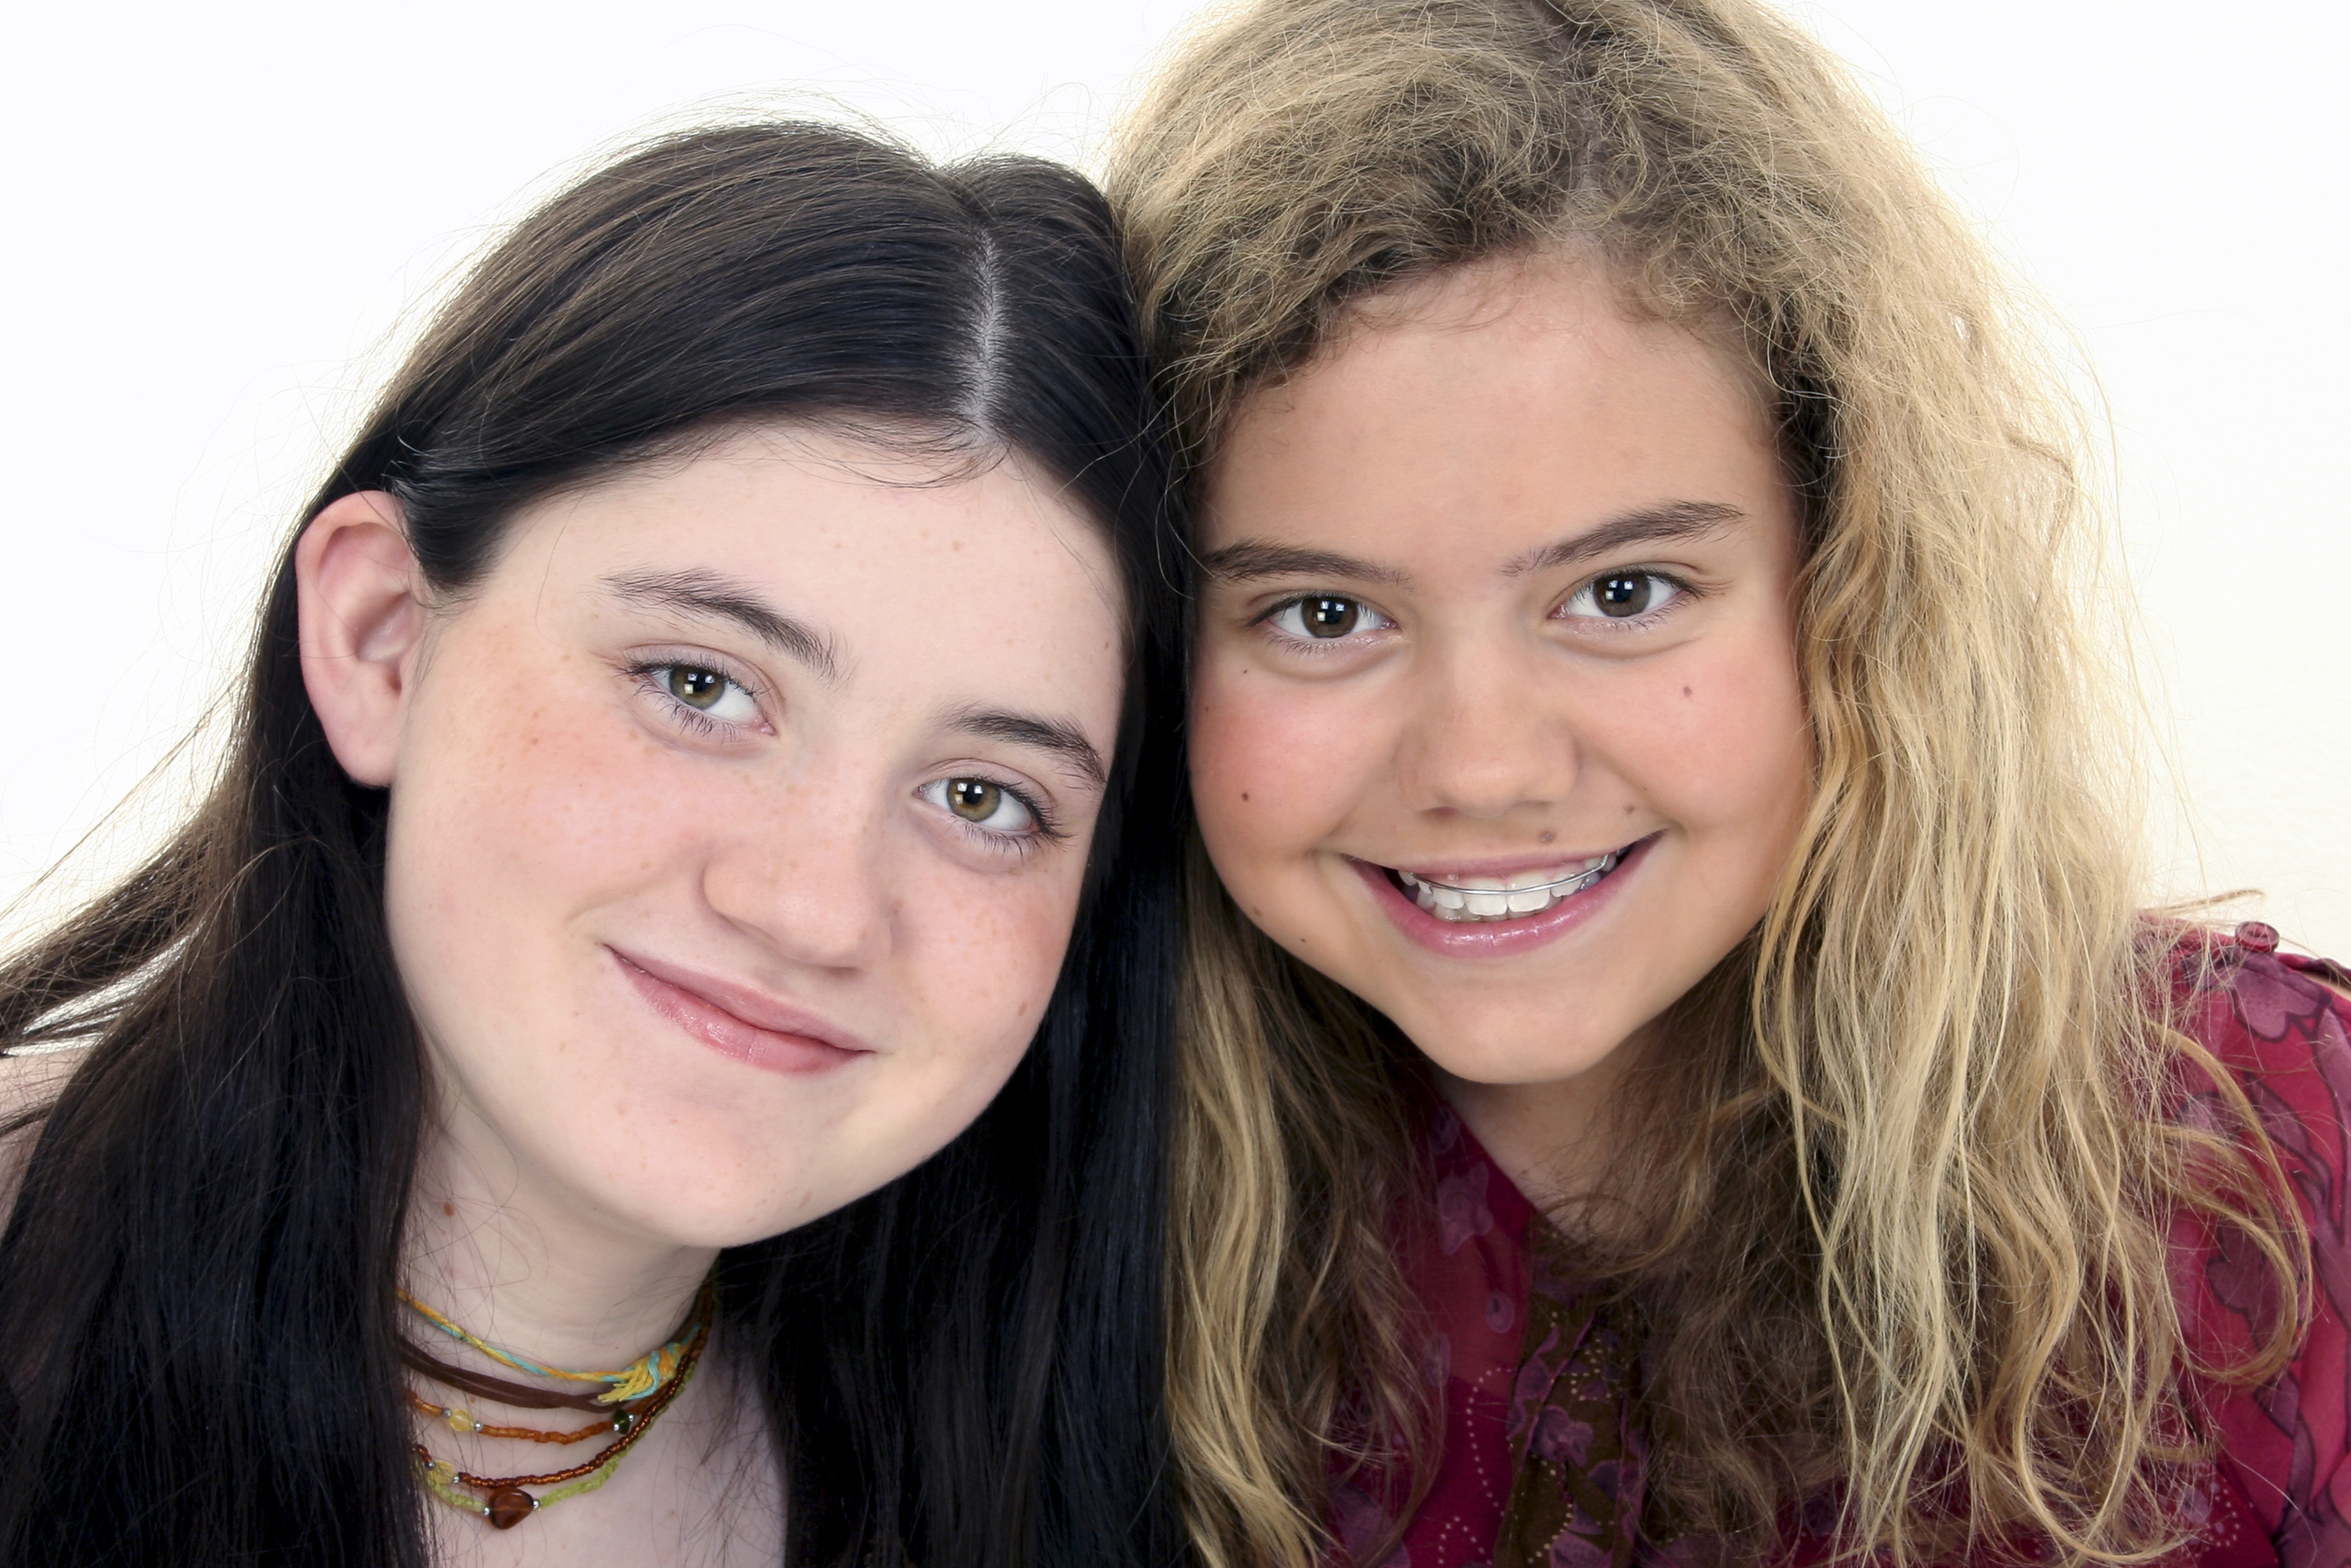 Two beautiful 12 year old friends together. Shot in studio over white.